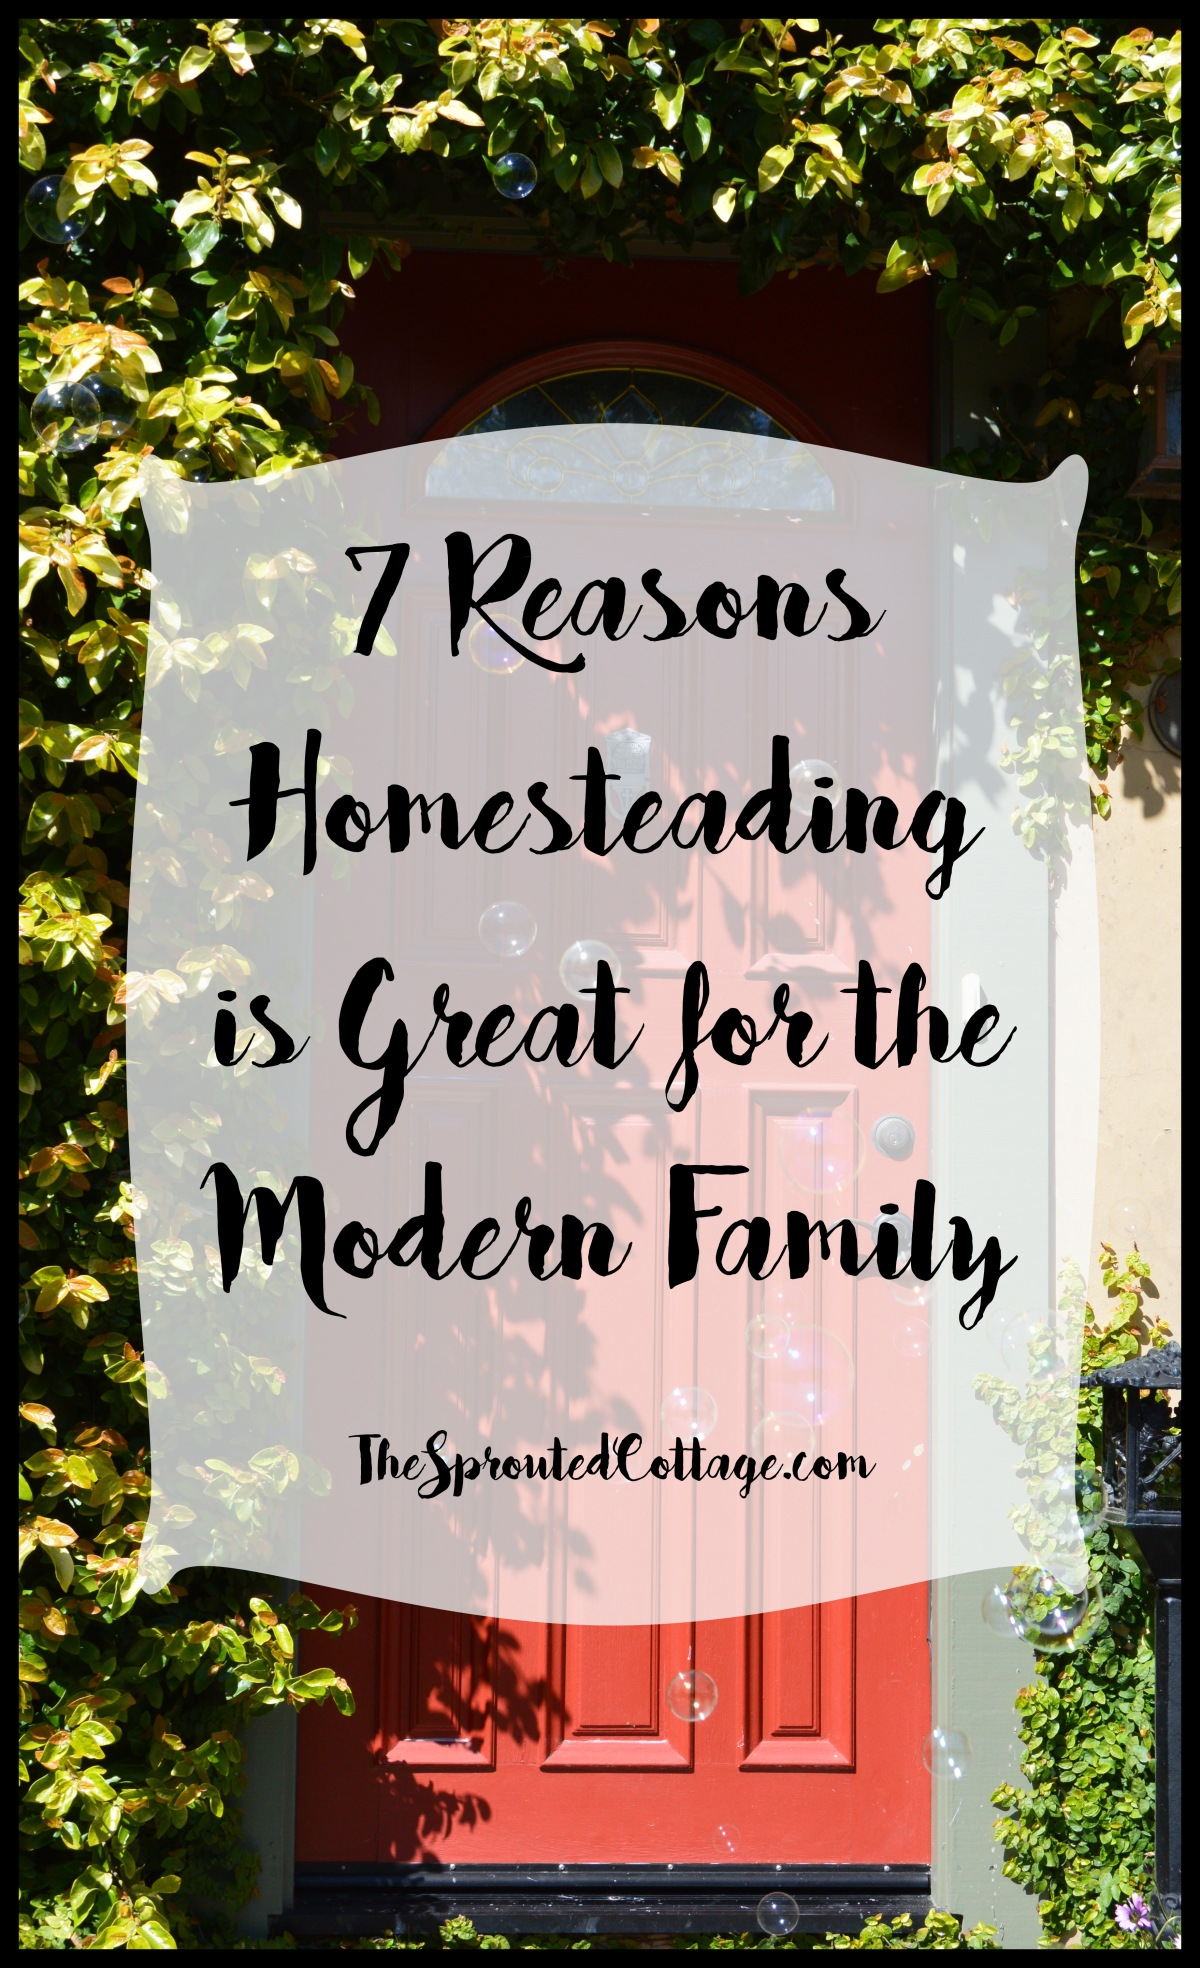 7 Reasons Homesteading is Great for the Modern Family